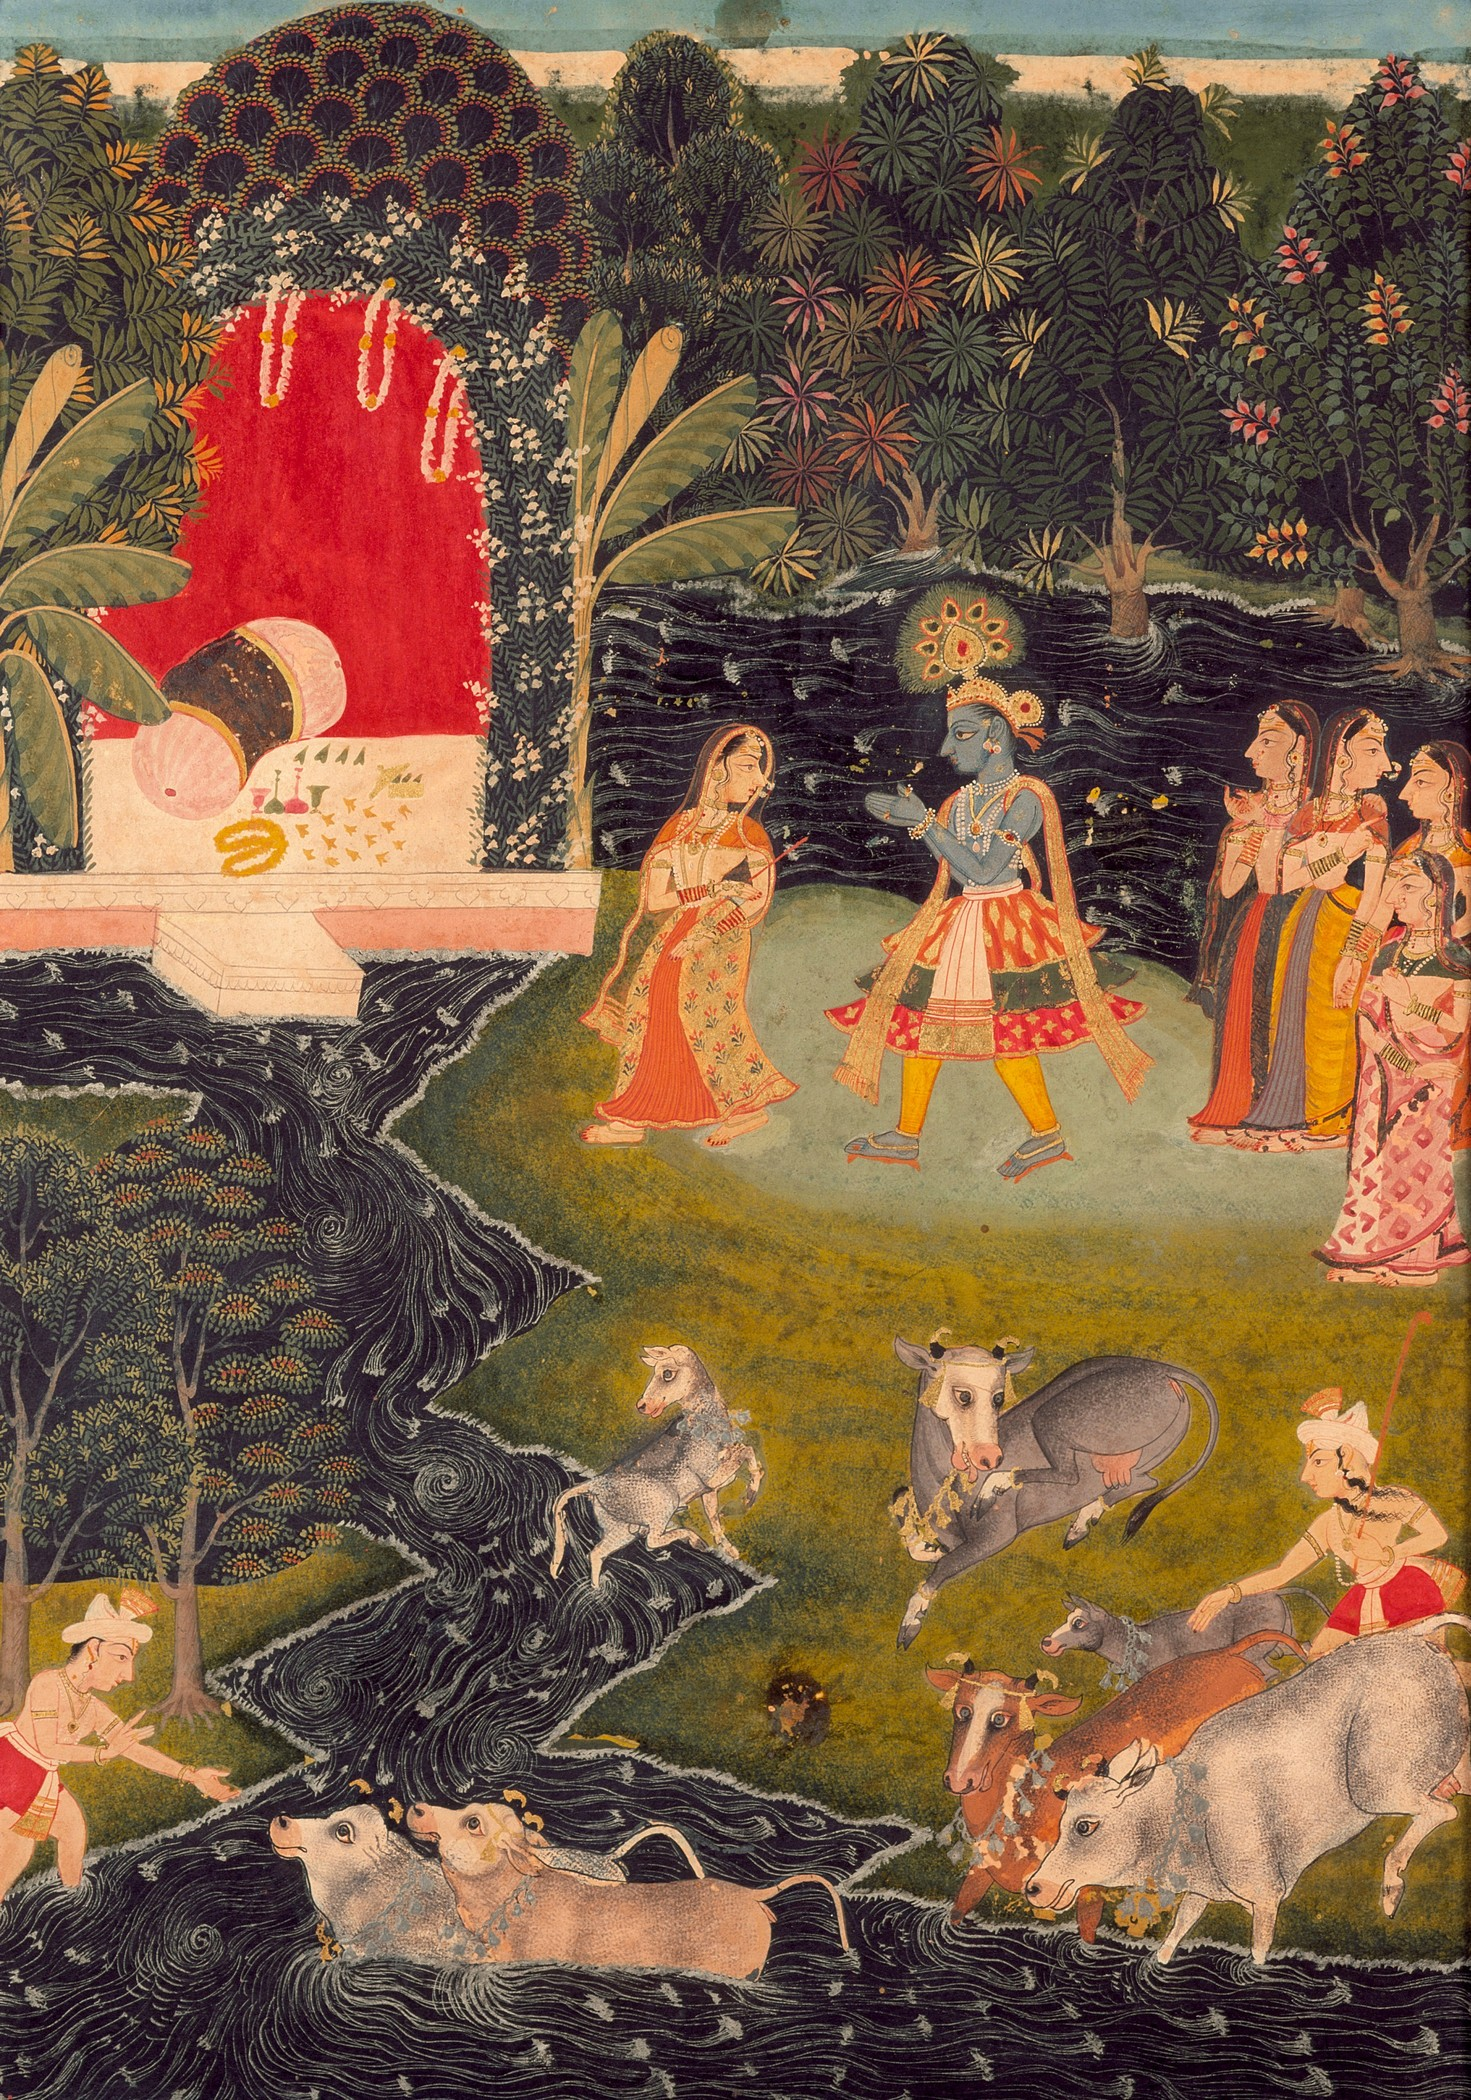 Image: Dalliance in Vrindavan, c. 1725